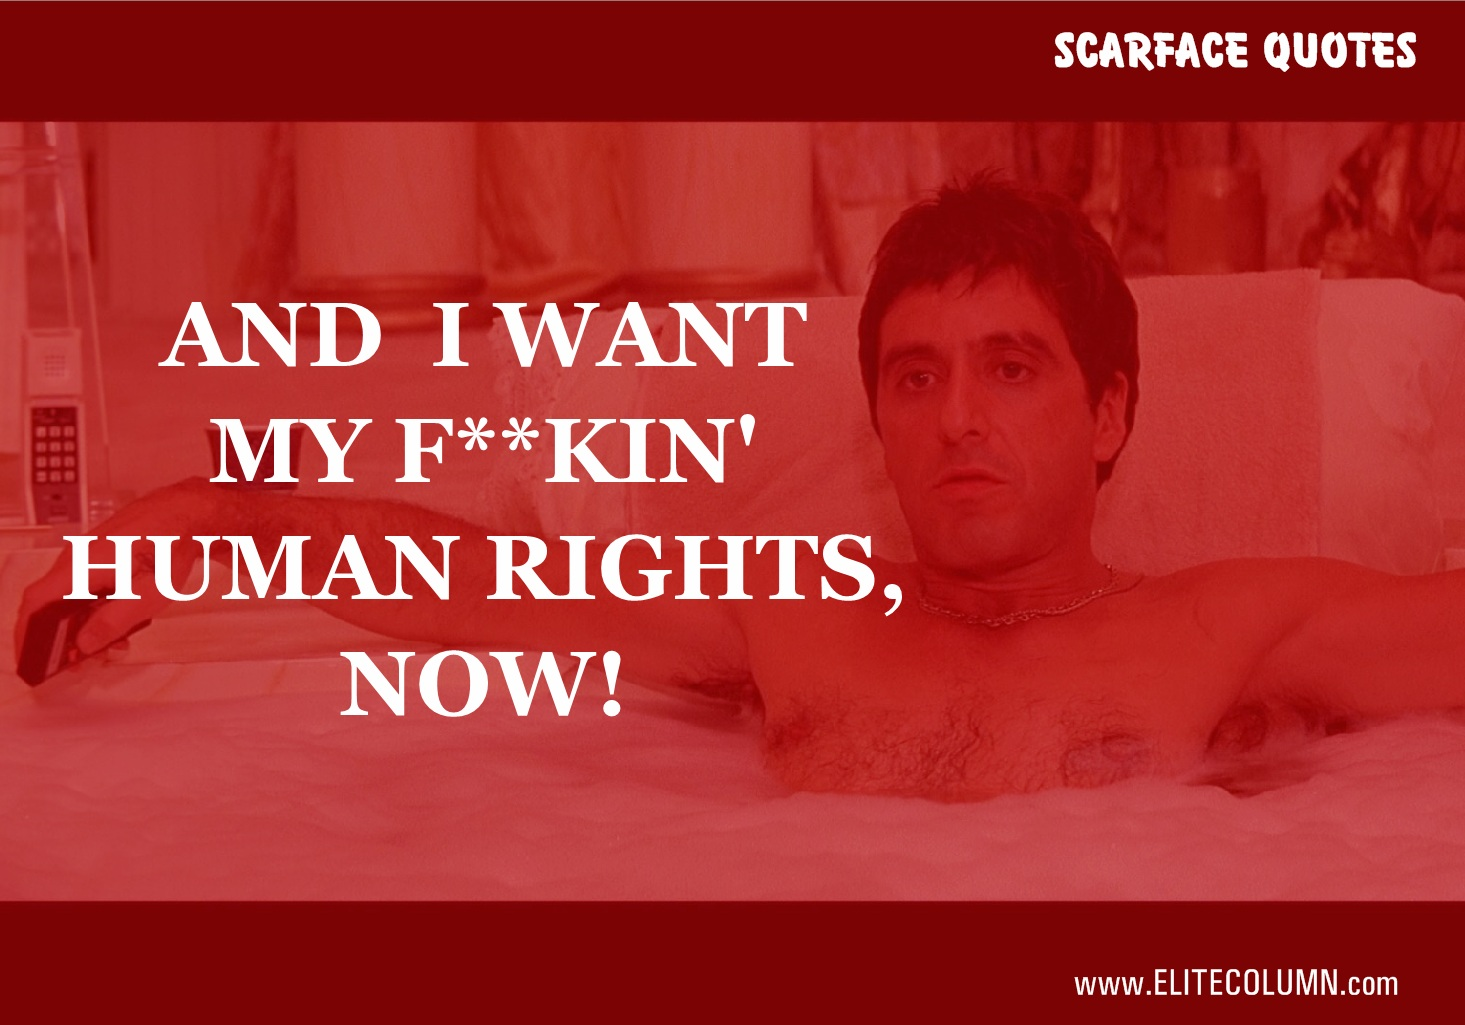 Scarface Quotes (10)